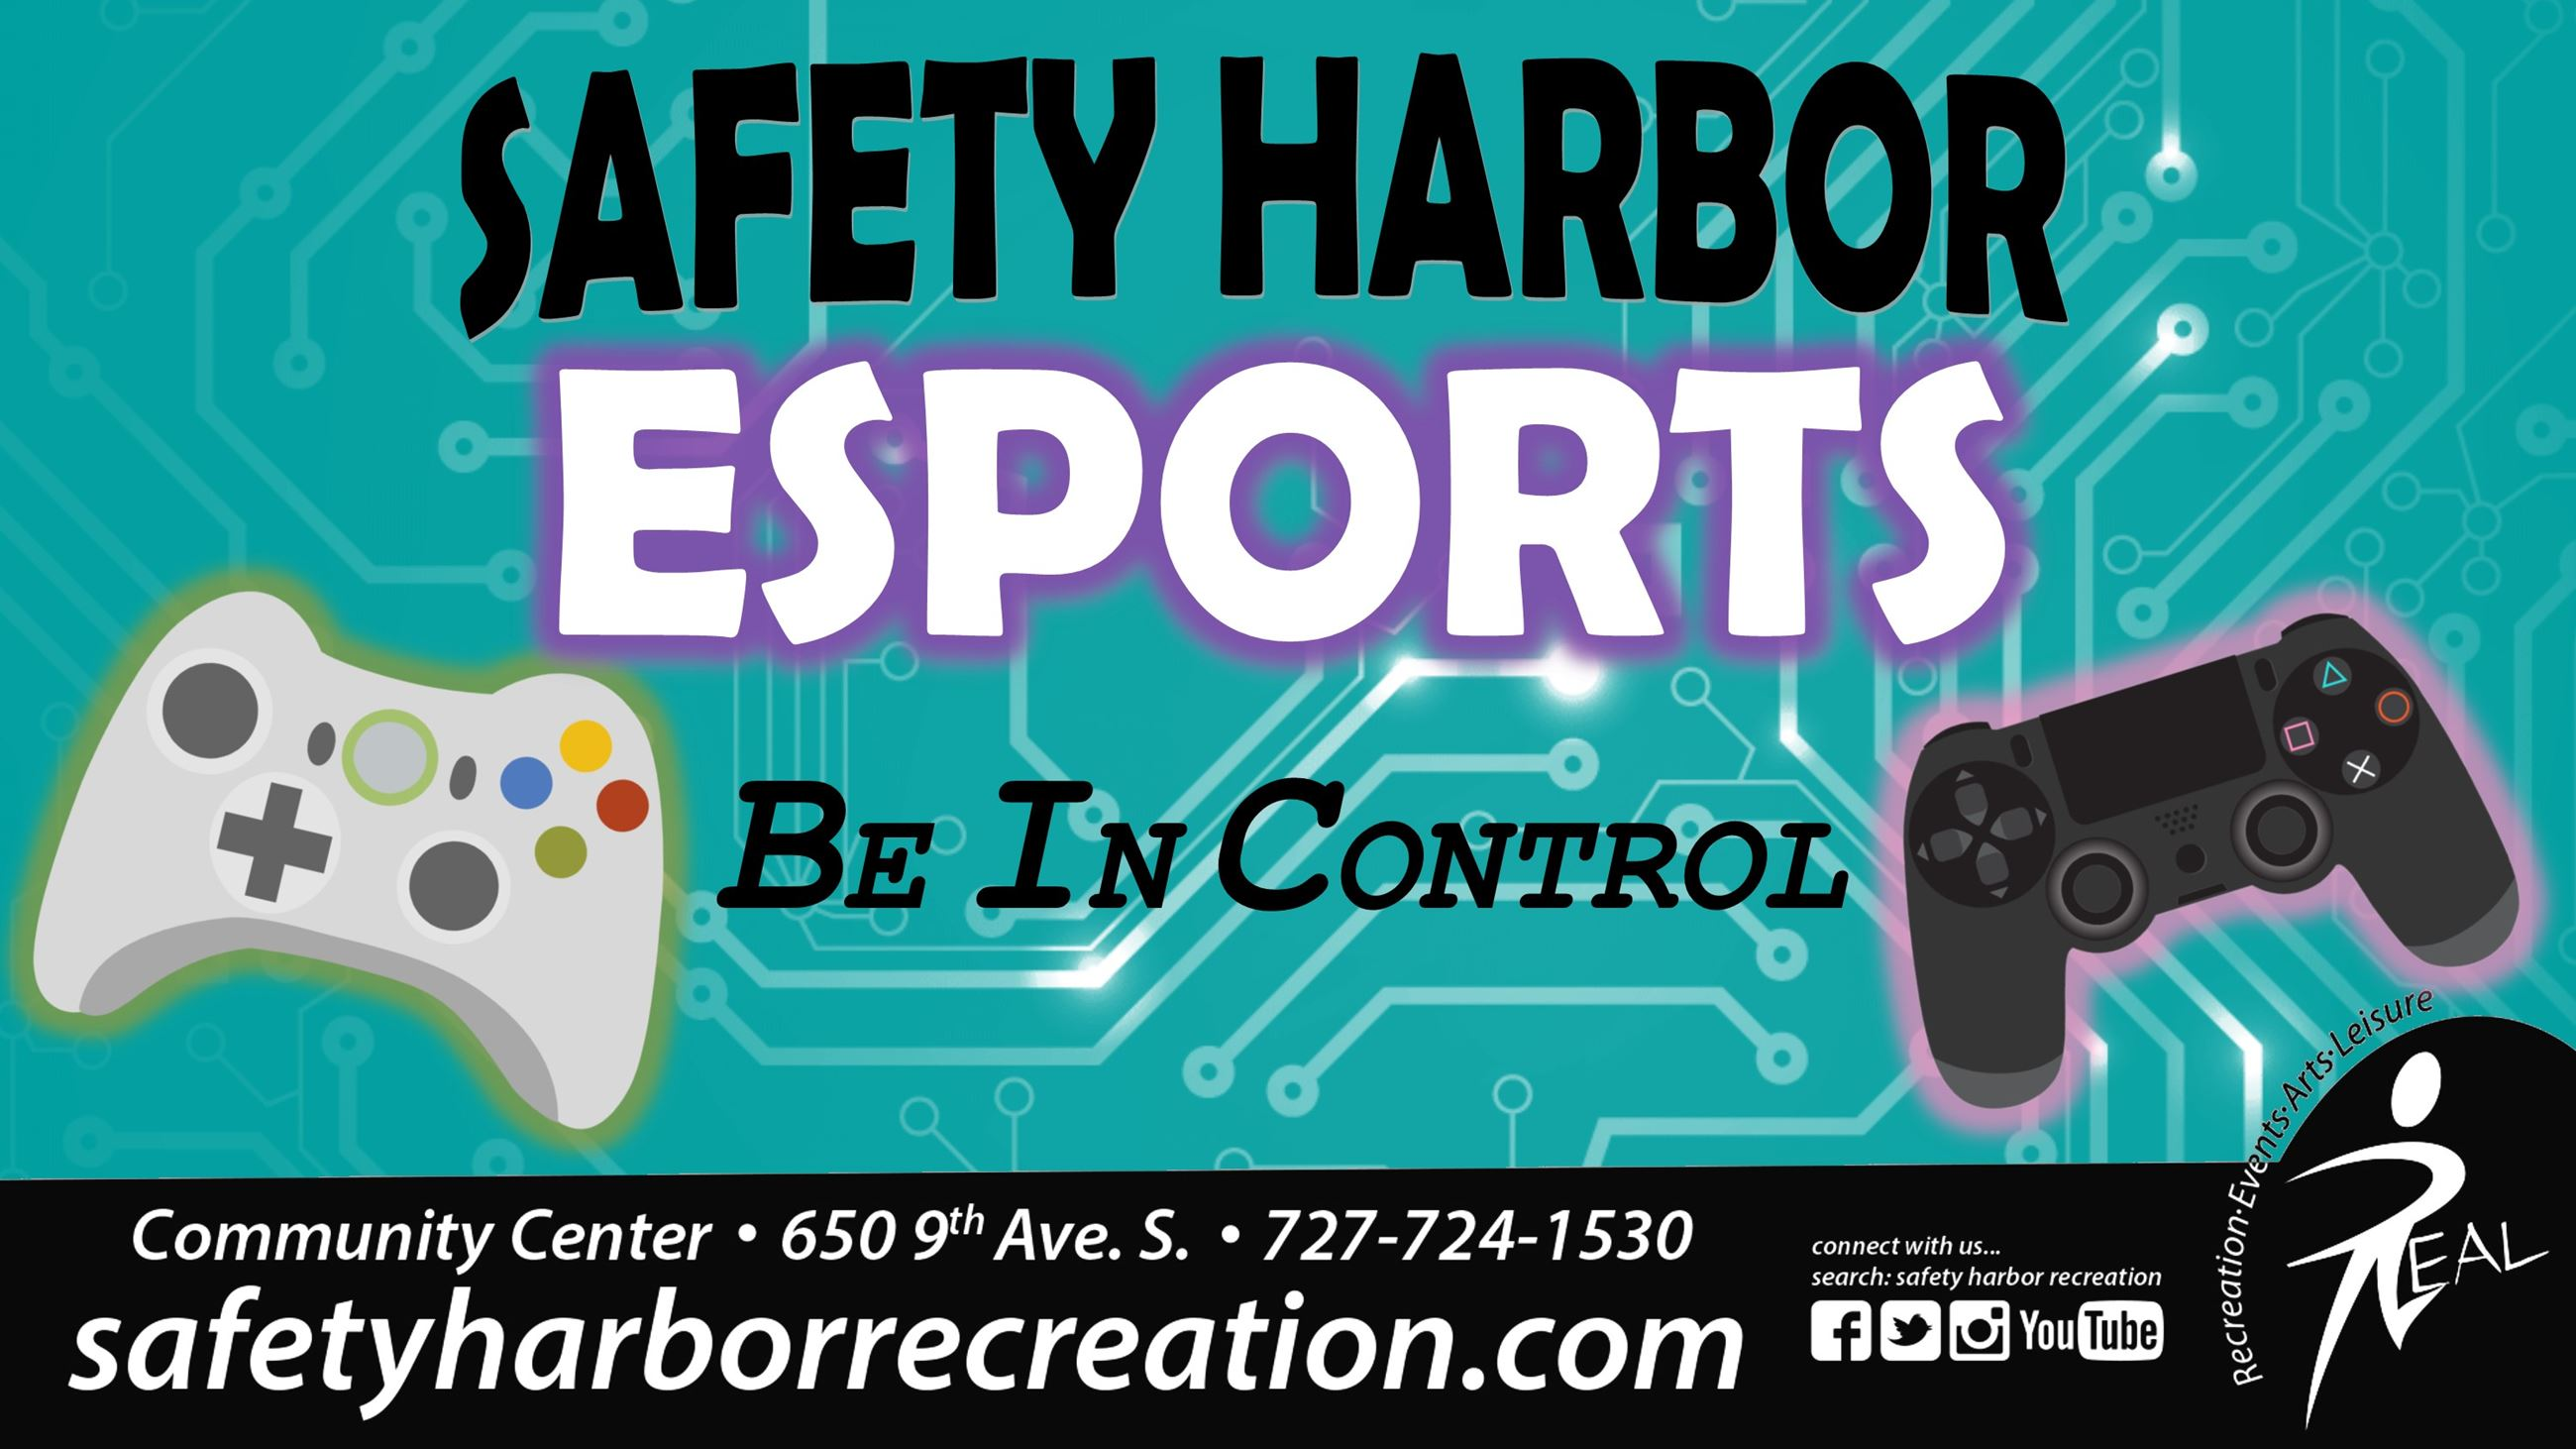 Safety Harbor ESports - Be In Control. Community Center, 650 9th Ave. S. 727-724-1530